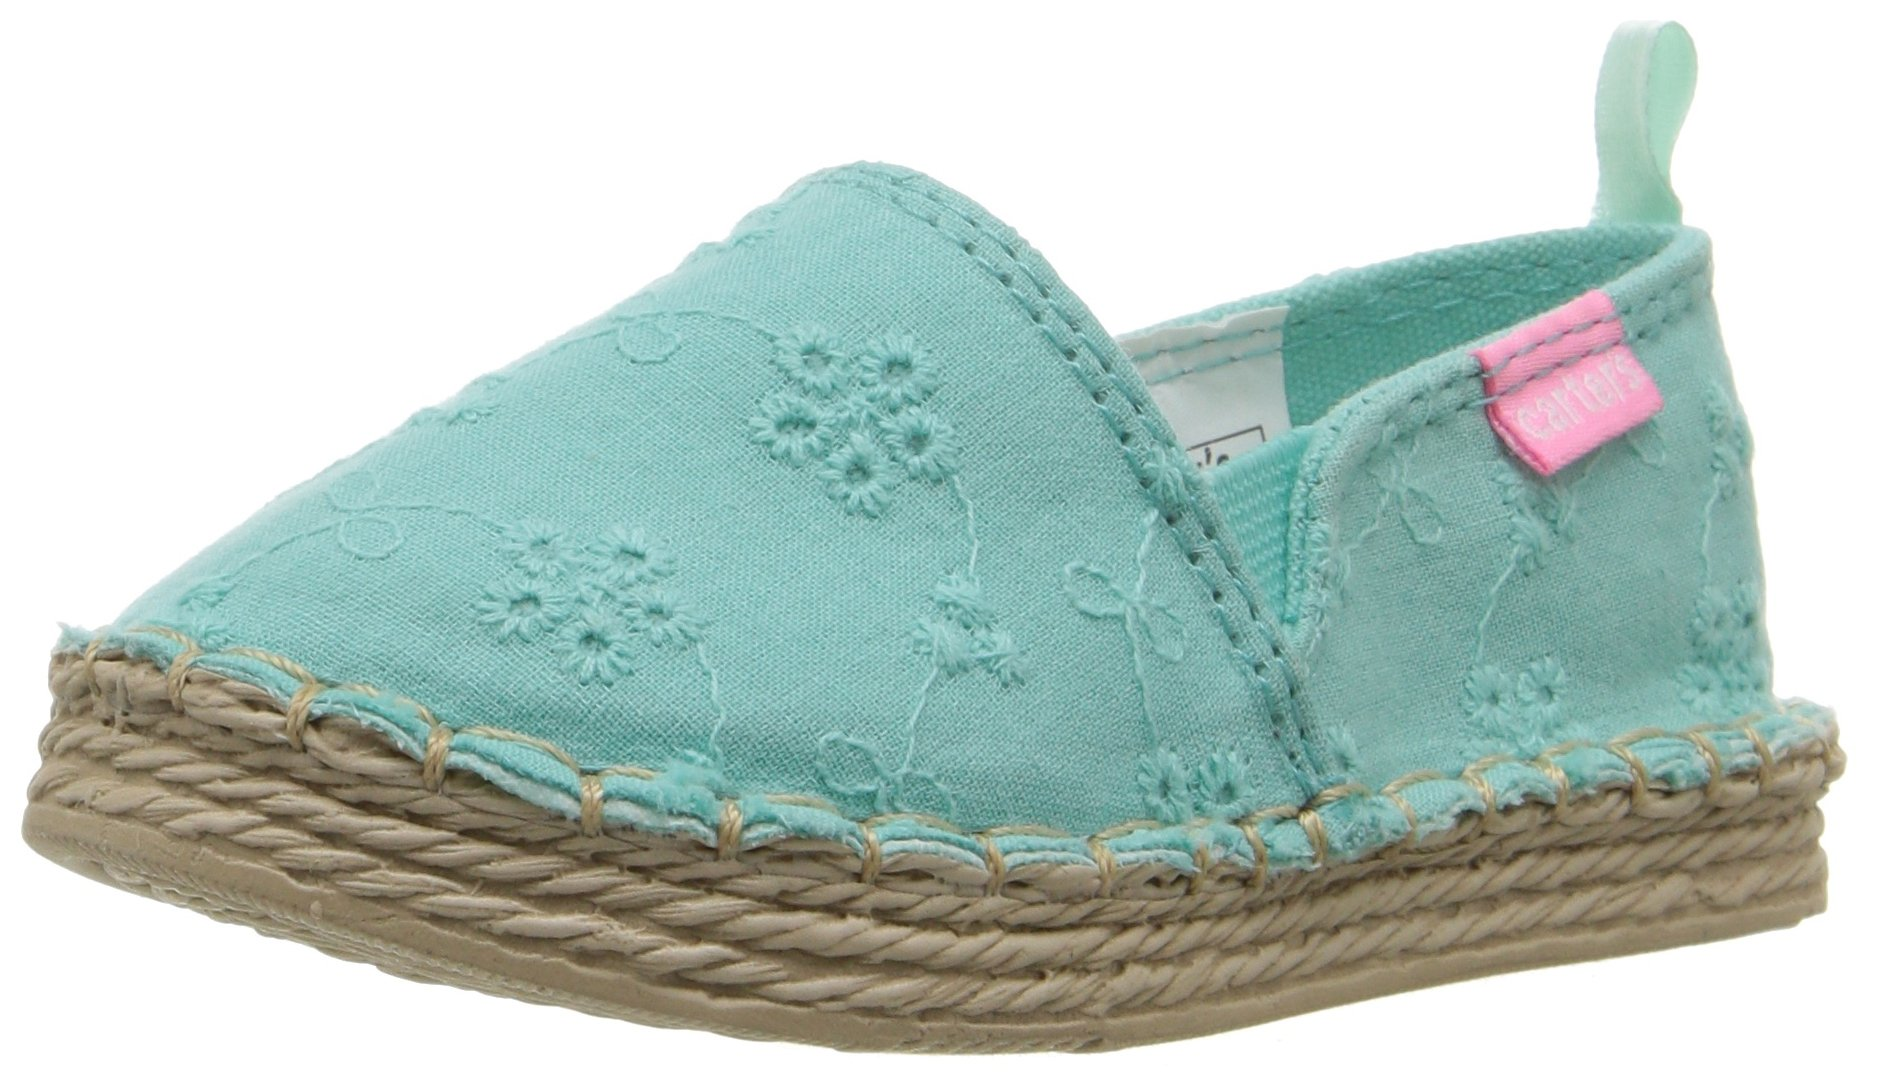 Carter's Astrid Girl's Espadrille Slip-On, Turquoise, 10 M US Toddler by Carter's (Image #1)